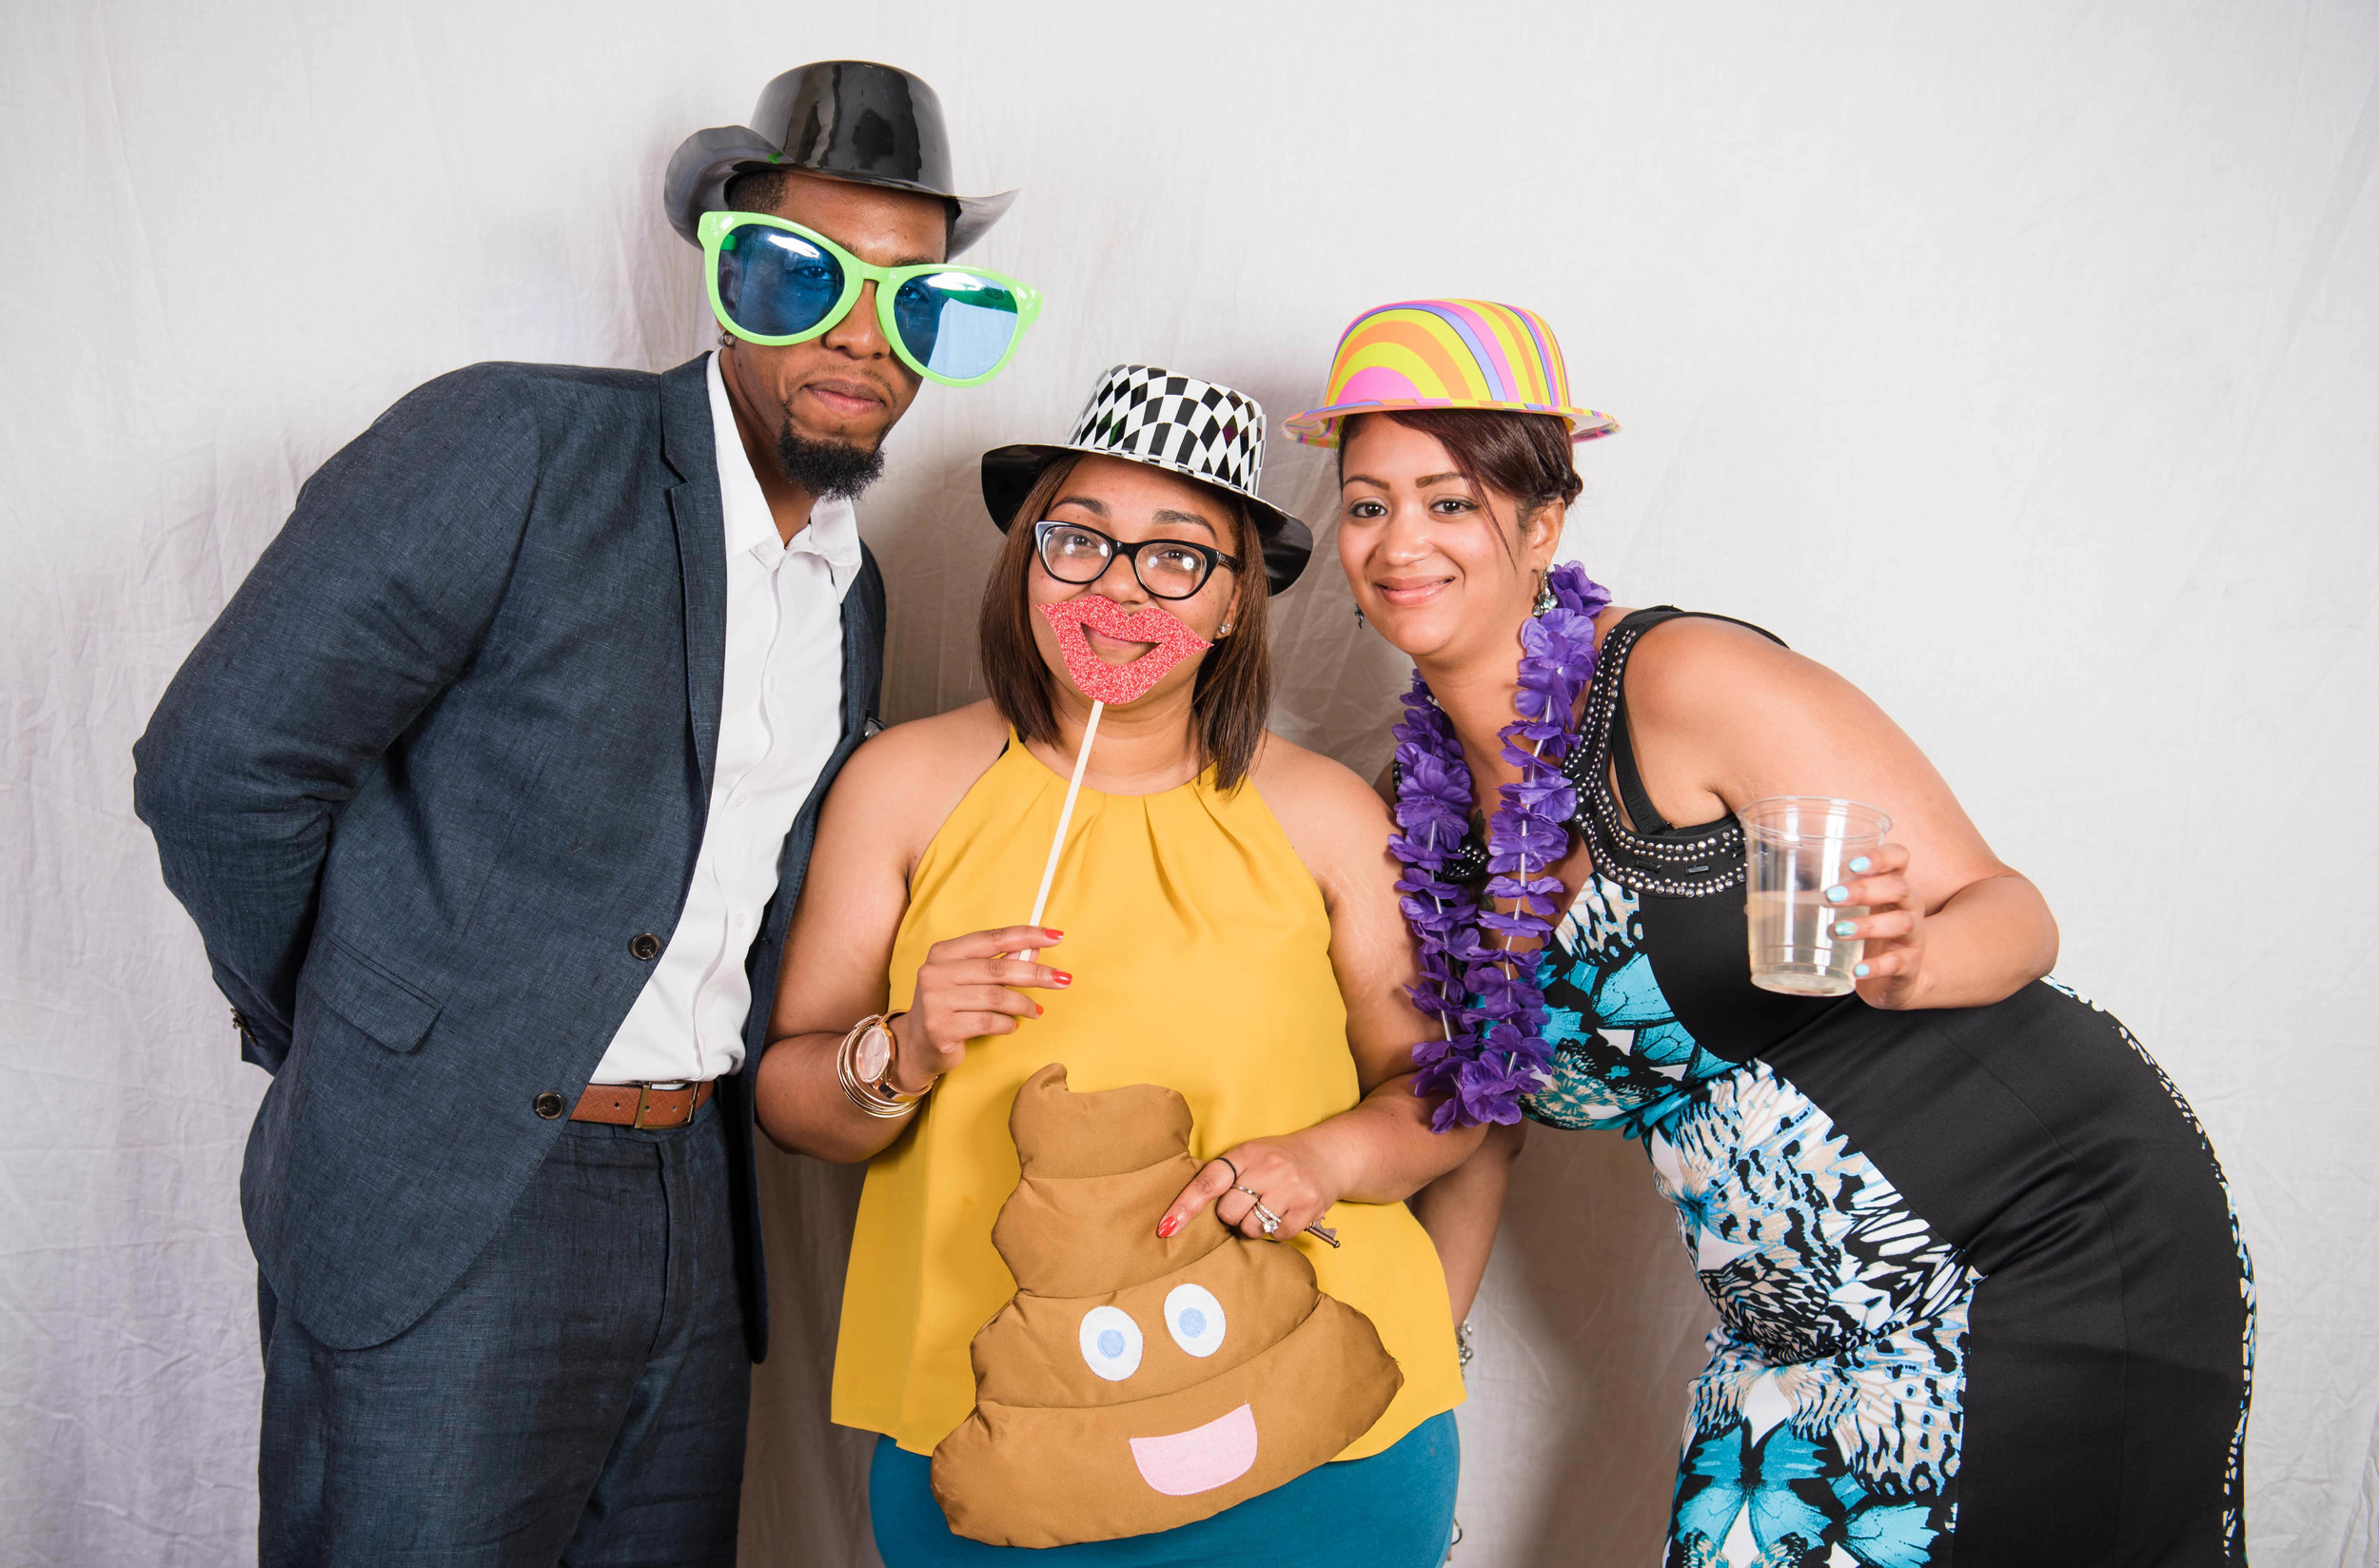 Our Photo Booth FUN!